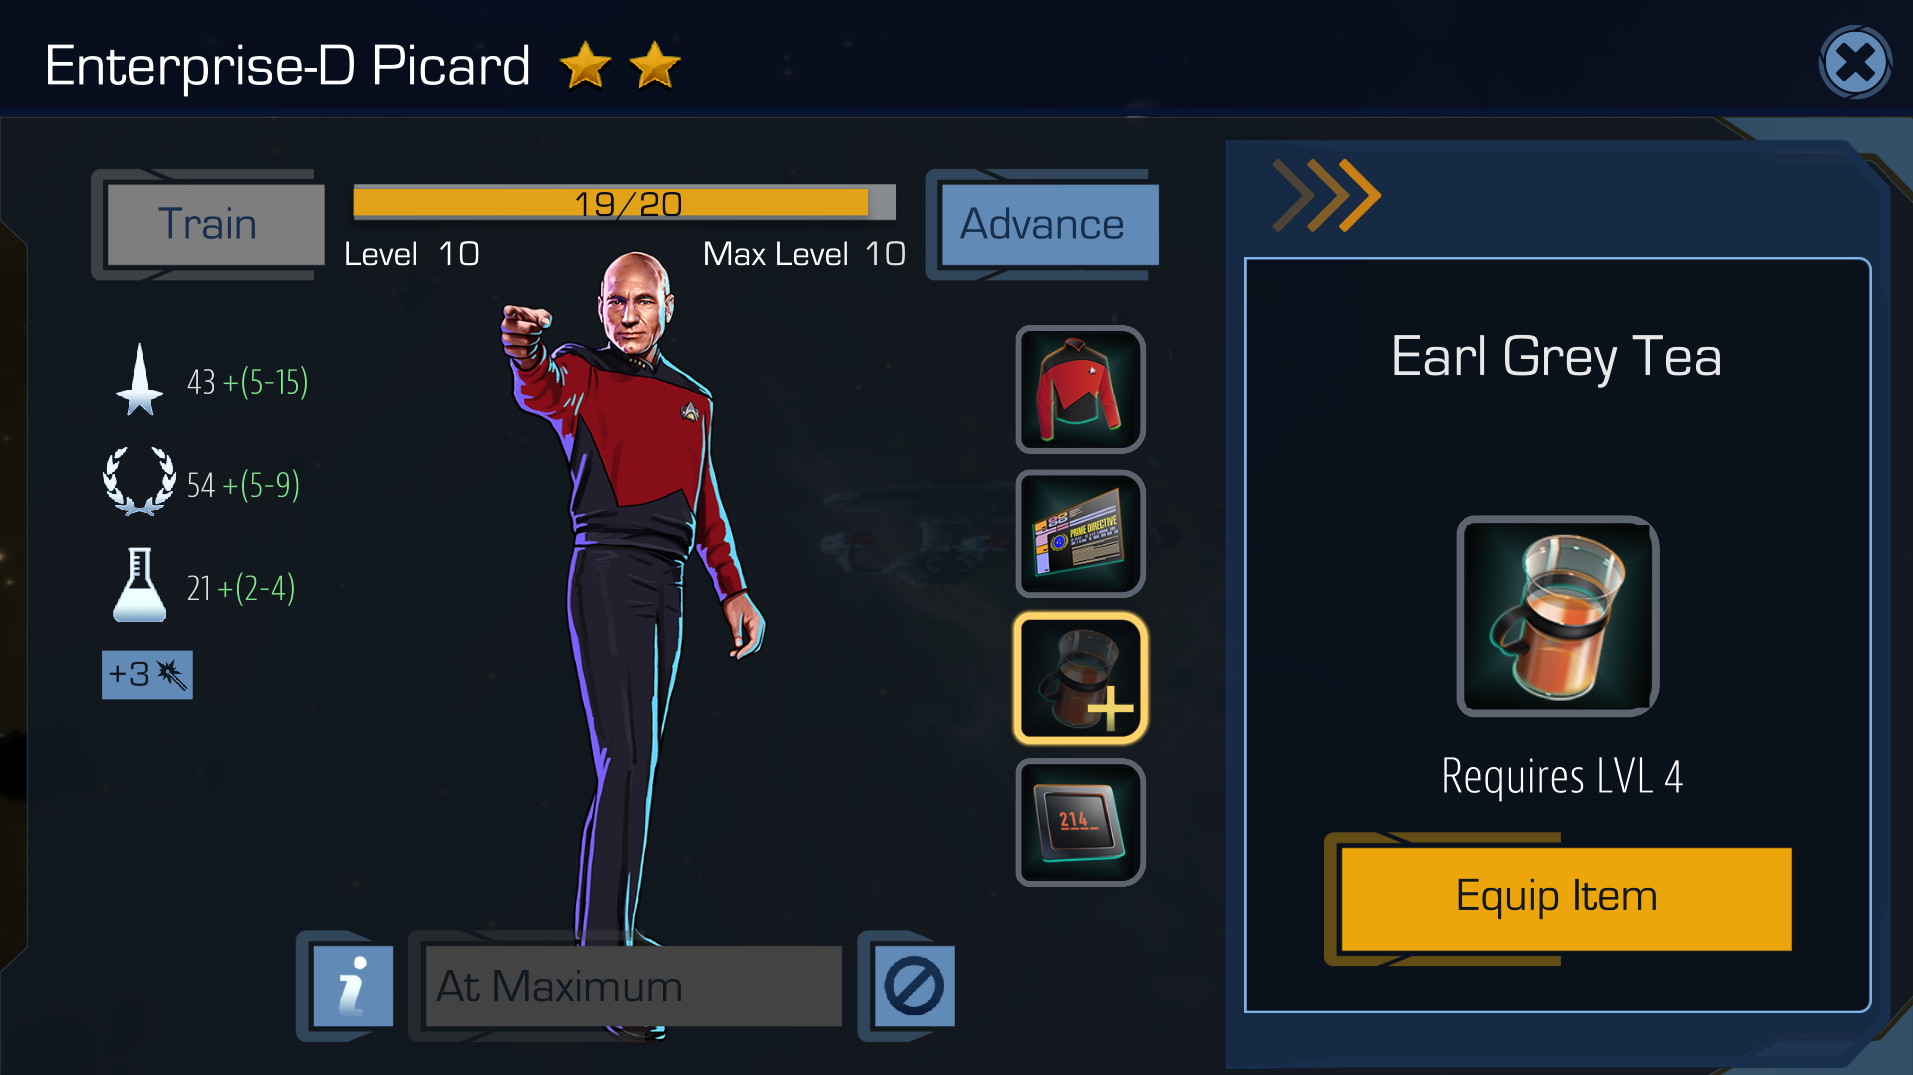 "Ah, delicious Earl Grey. The ""Advance"" button is now gold, and on the right we see Picard's portrait also has a gold circle ""!"" notification."